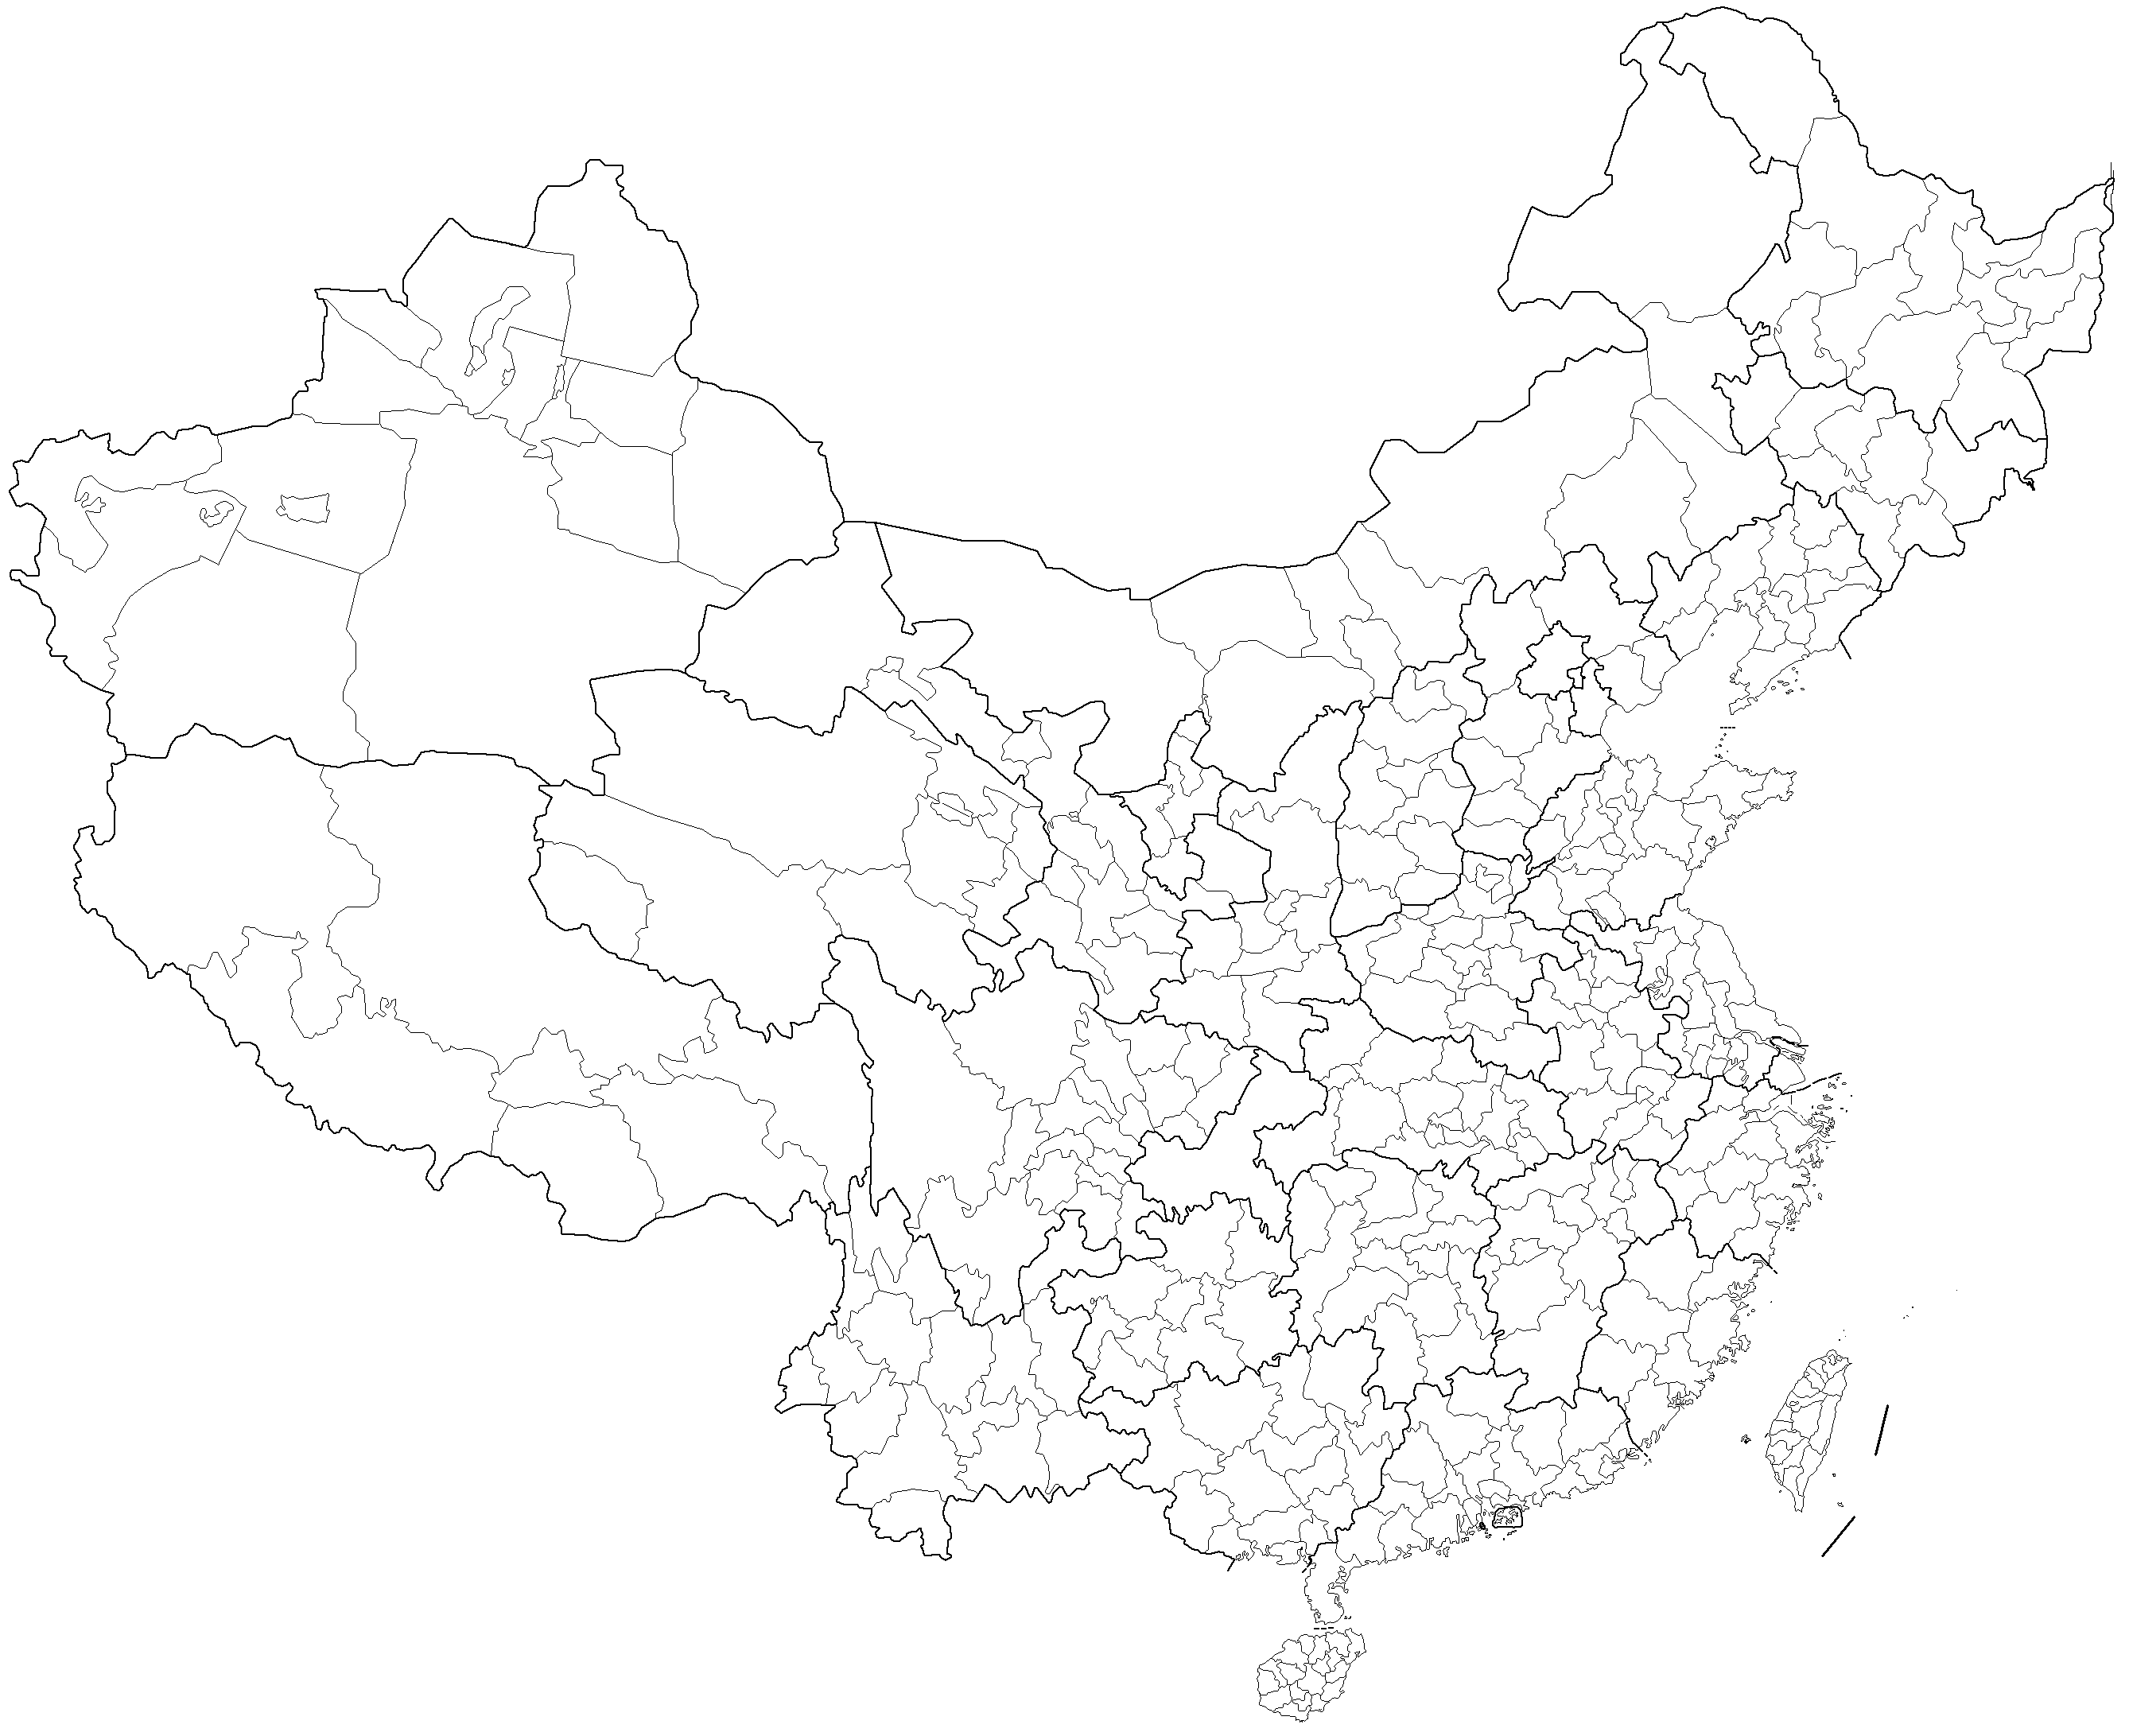 Vietnam Outline Map besides Map Usa And South America also Printable Us Maps United States With Cap likewise China map provinces blank in addition Usa Map With State Names Coloring Page. on us map with states and capitals